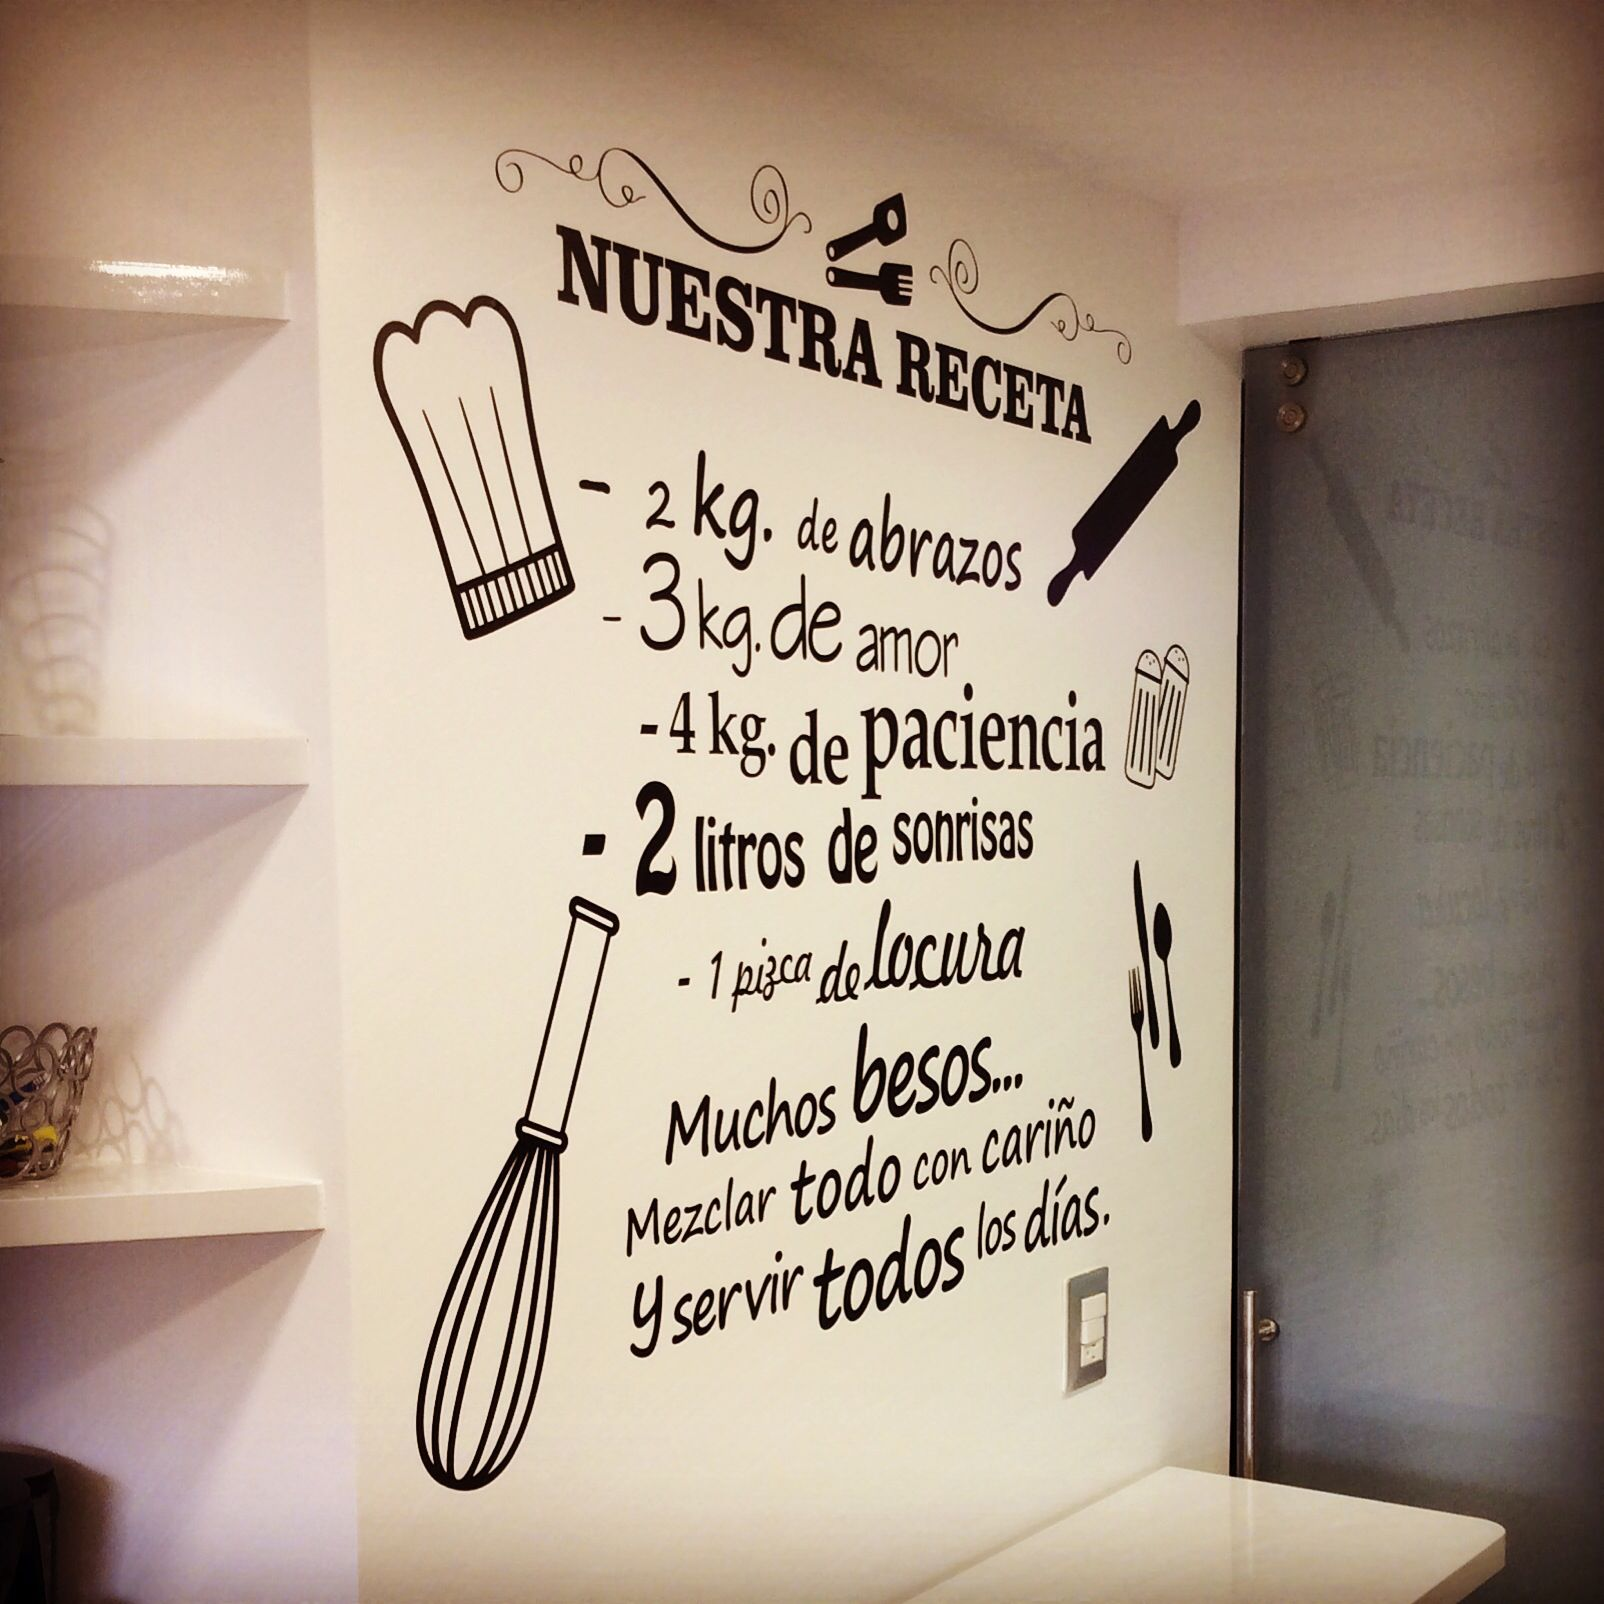 Una Receta De Cocina Nuestra Receta Design Home Decor Kitchen Decor Y Room